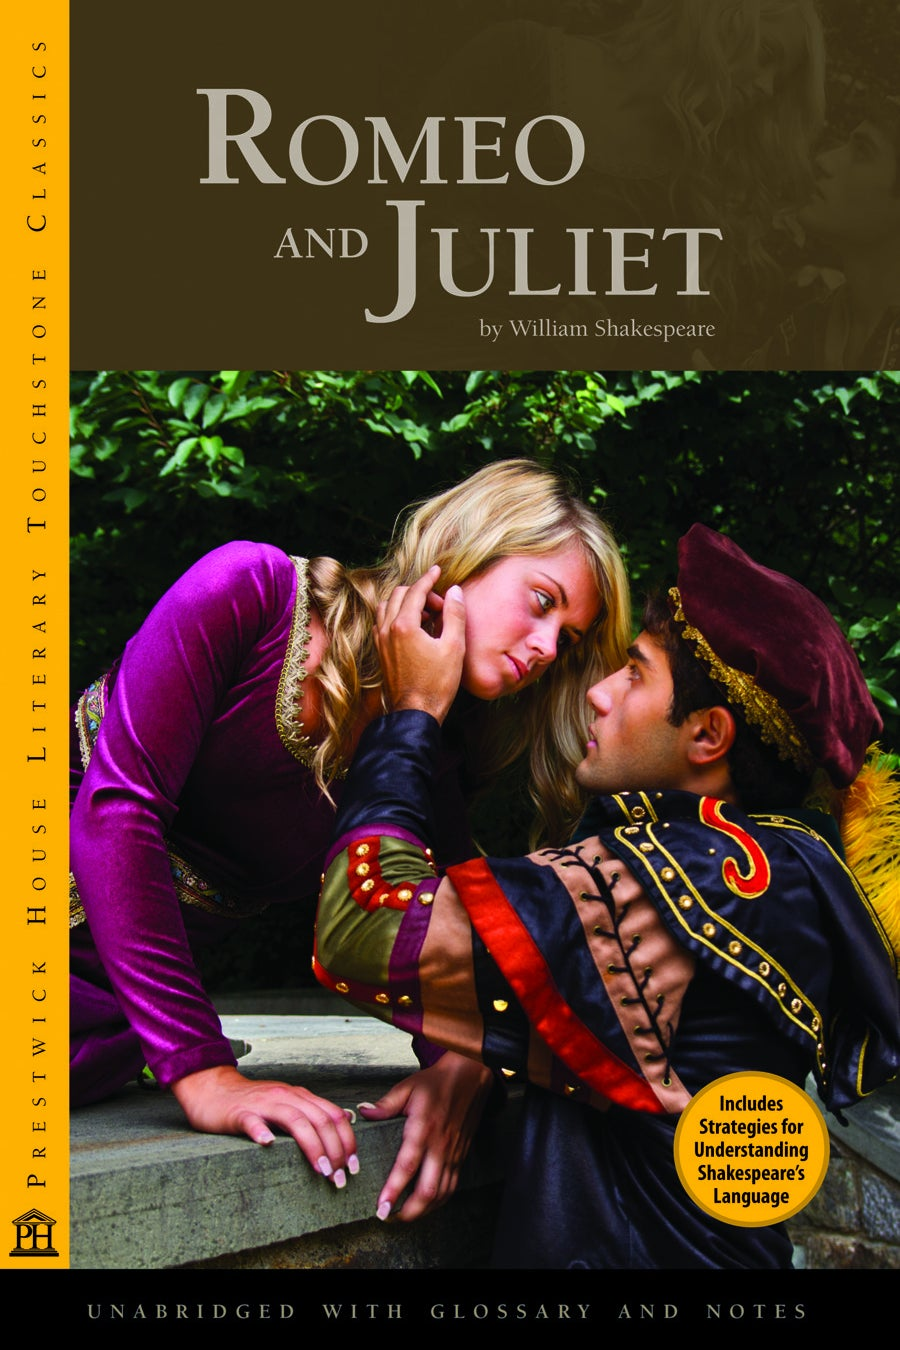 romeo and juliet differences between movie and book Romeo and juliet movie comparison in franco zeffirelli's 1968 version of romeo and juliet, is a traditional adaptation of shakespeare's original romeo and juliet, with some variations baz luhrmann directed the 1996 version, also known as the mtv romeo † juliet.